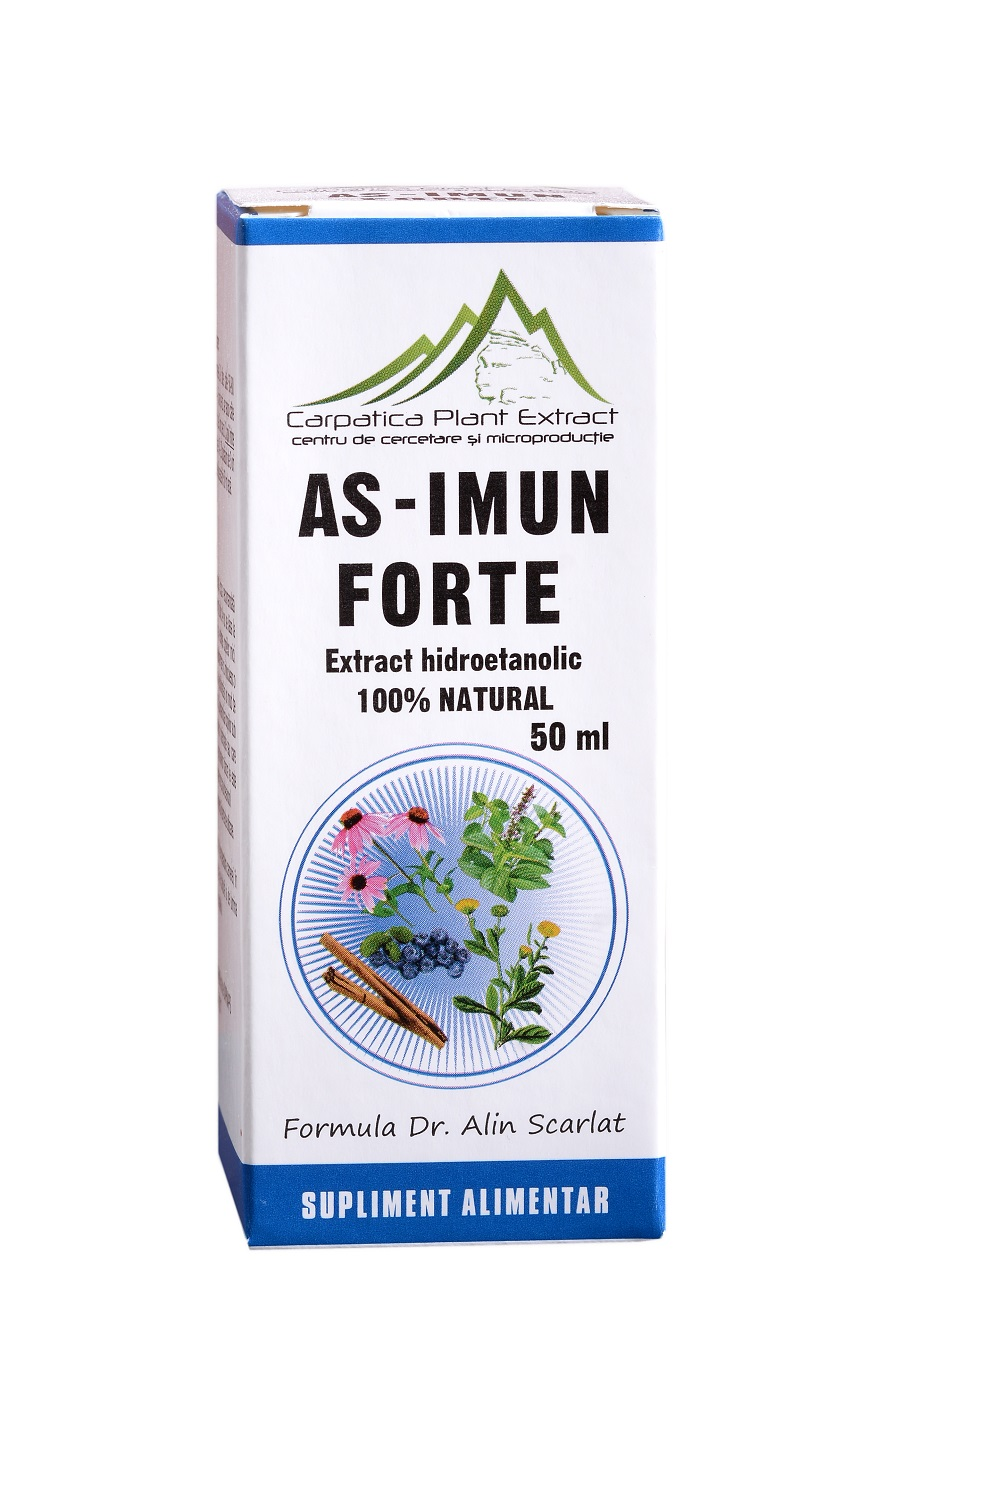 AS - Imun Forte, 50 ml, Carpatica Plant Extract drmax poza